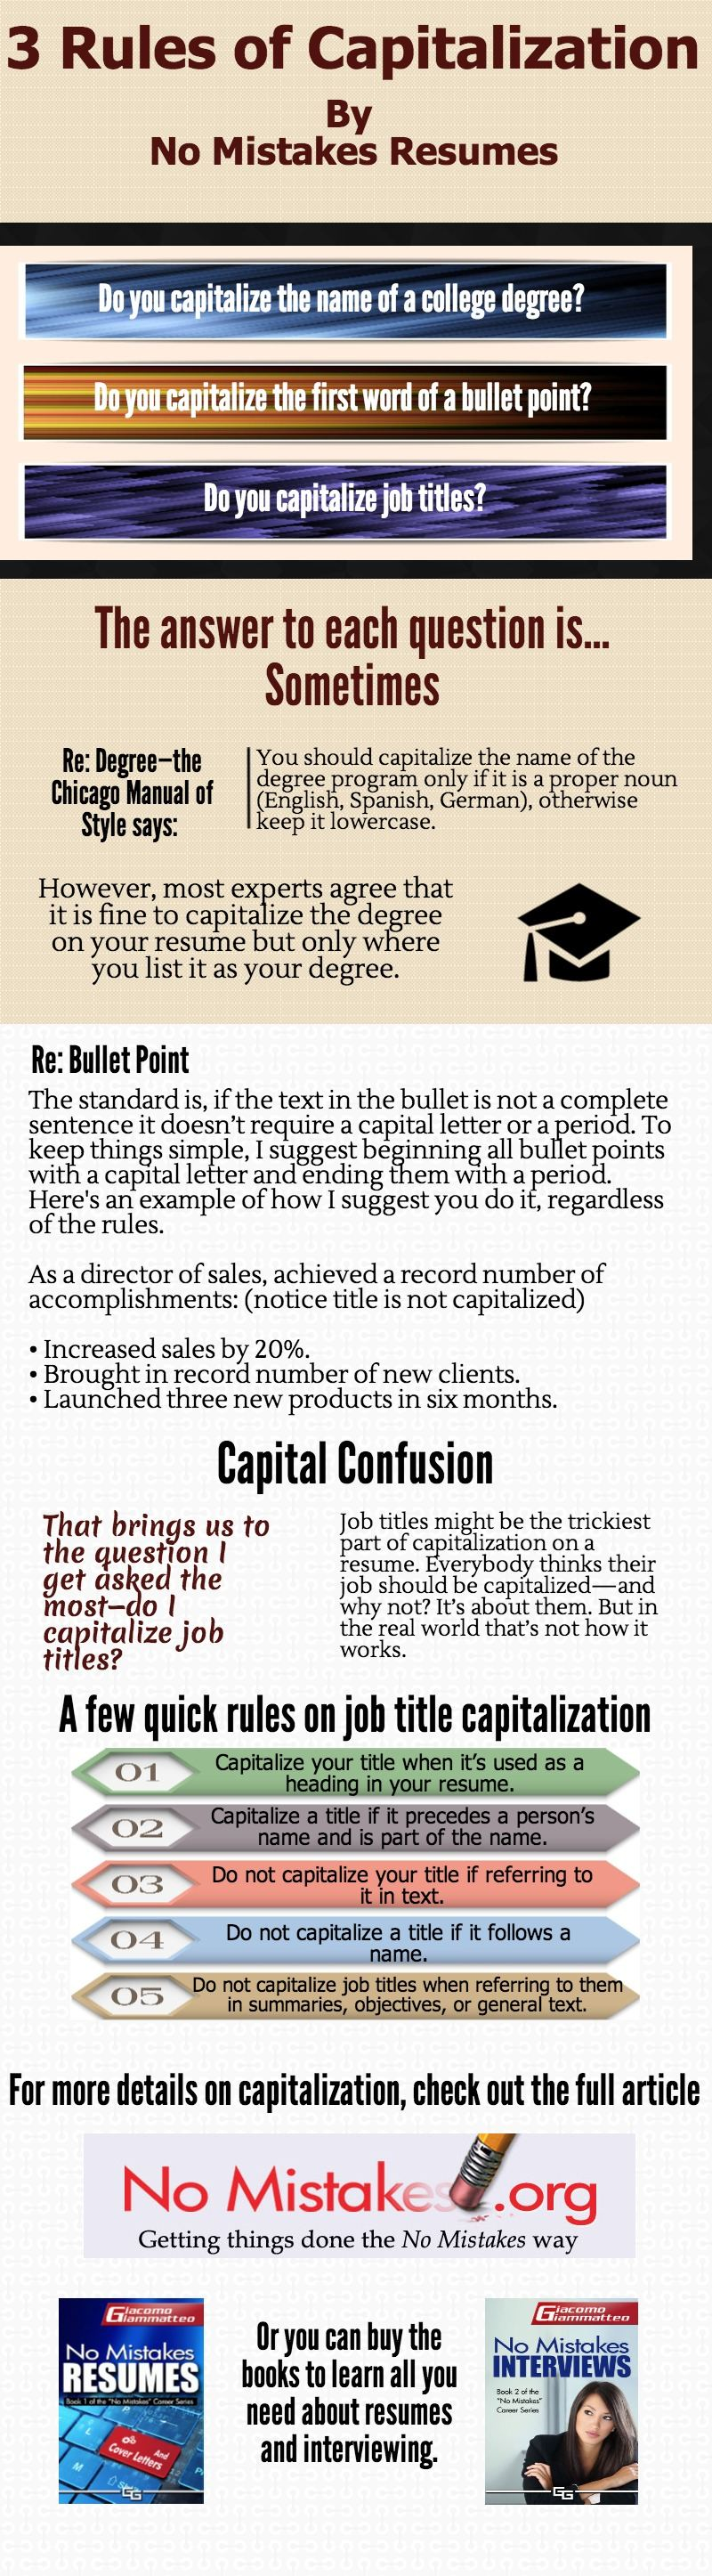 ap style guide capitalization job titles